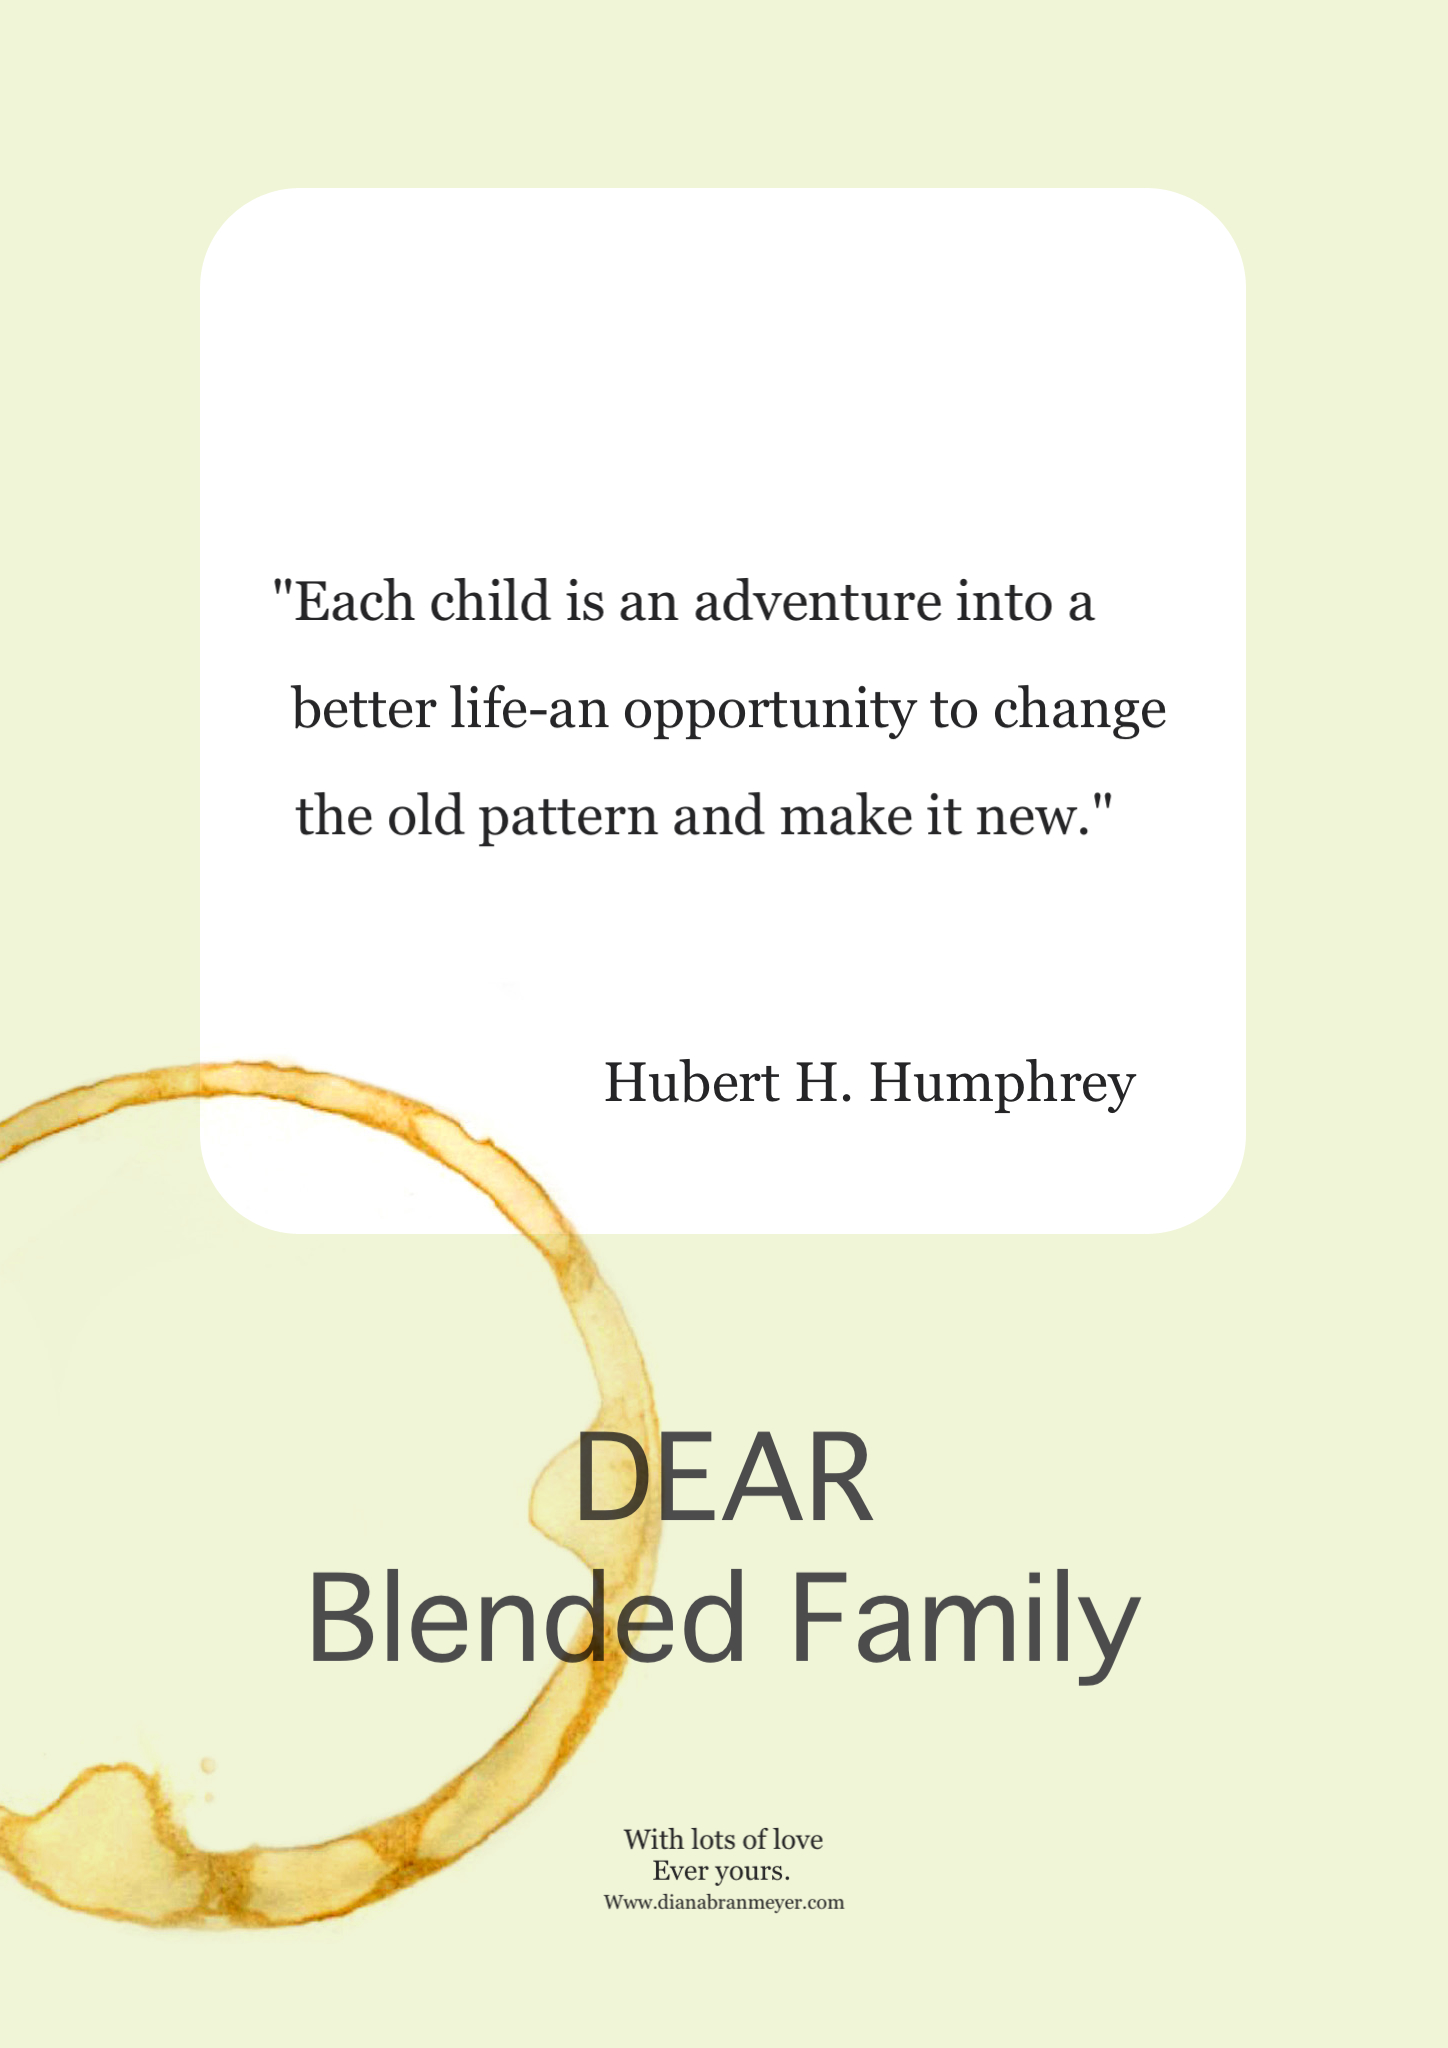 Inspirational Quotes About Blended Families. QuotesGram